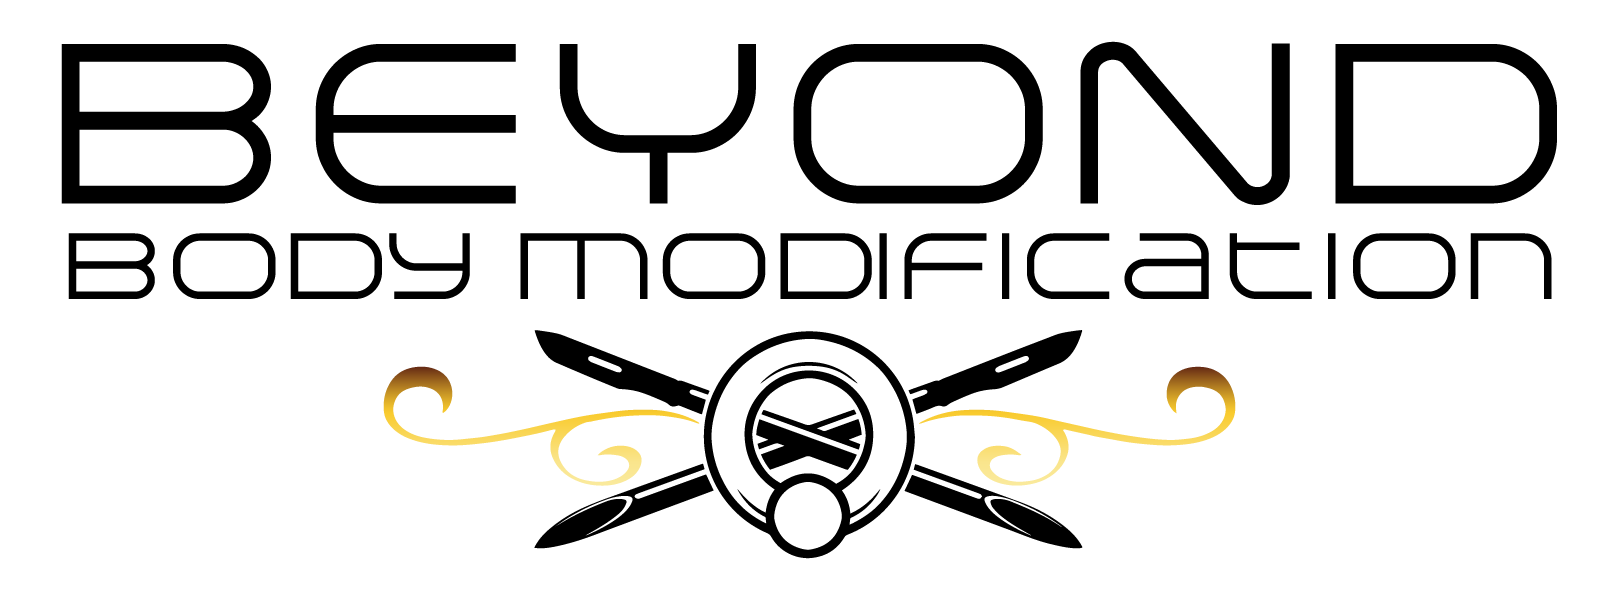 New-Beyond-Logo-with-gold-fillagree-1600x600px